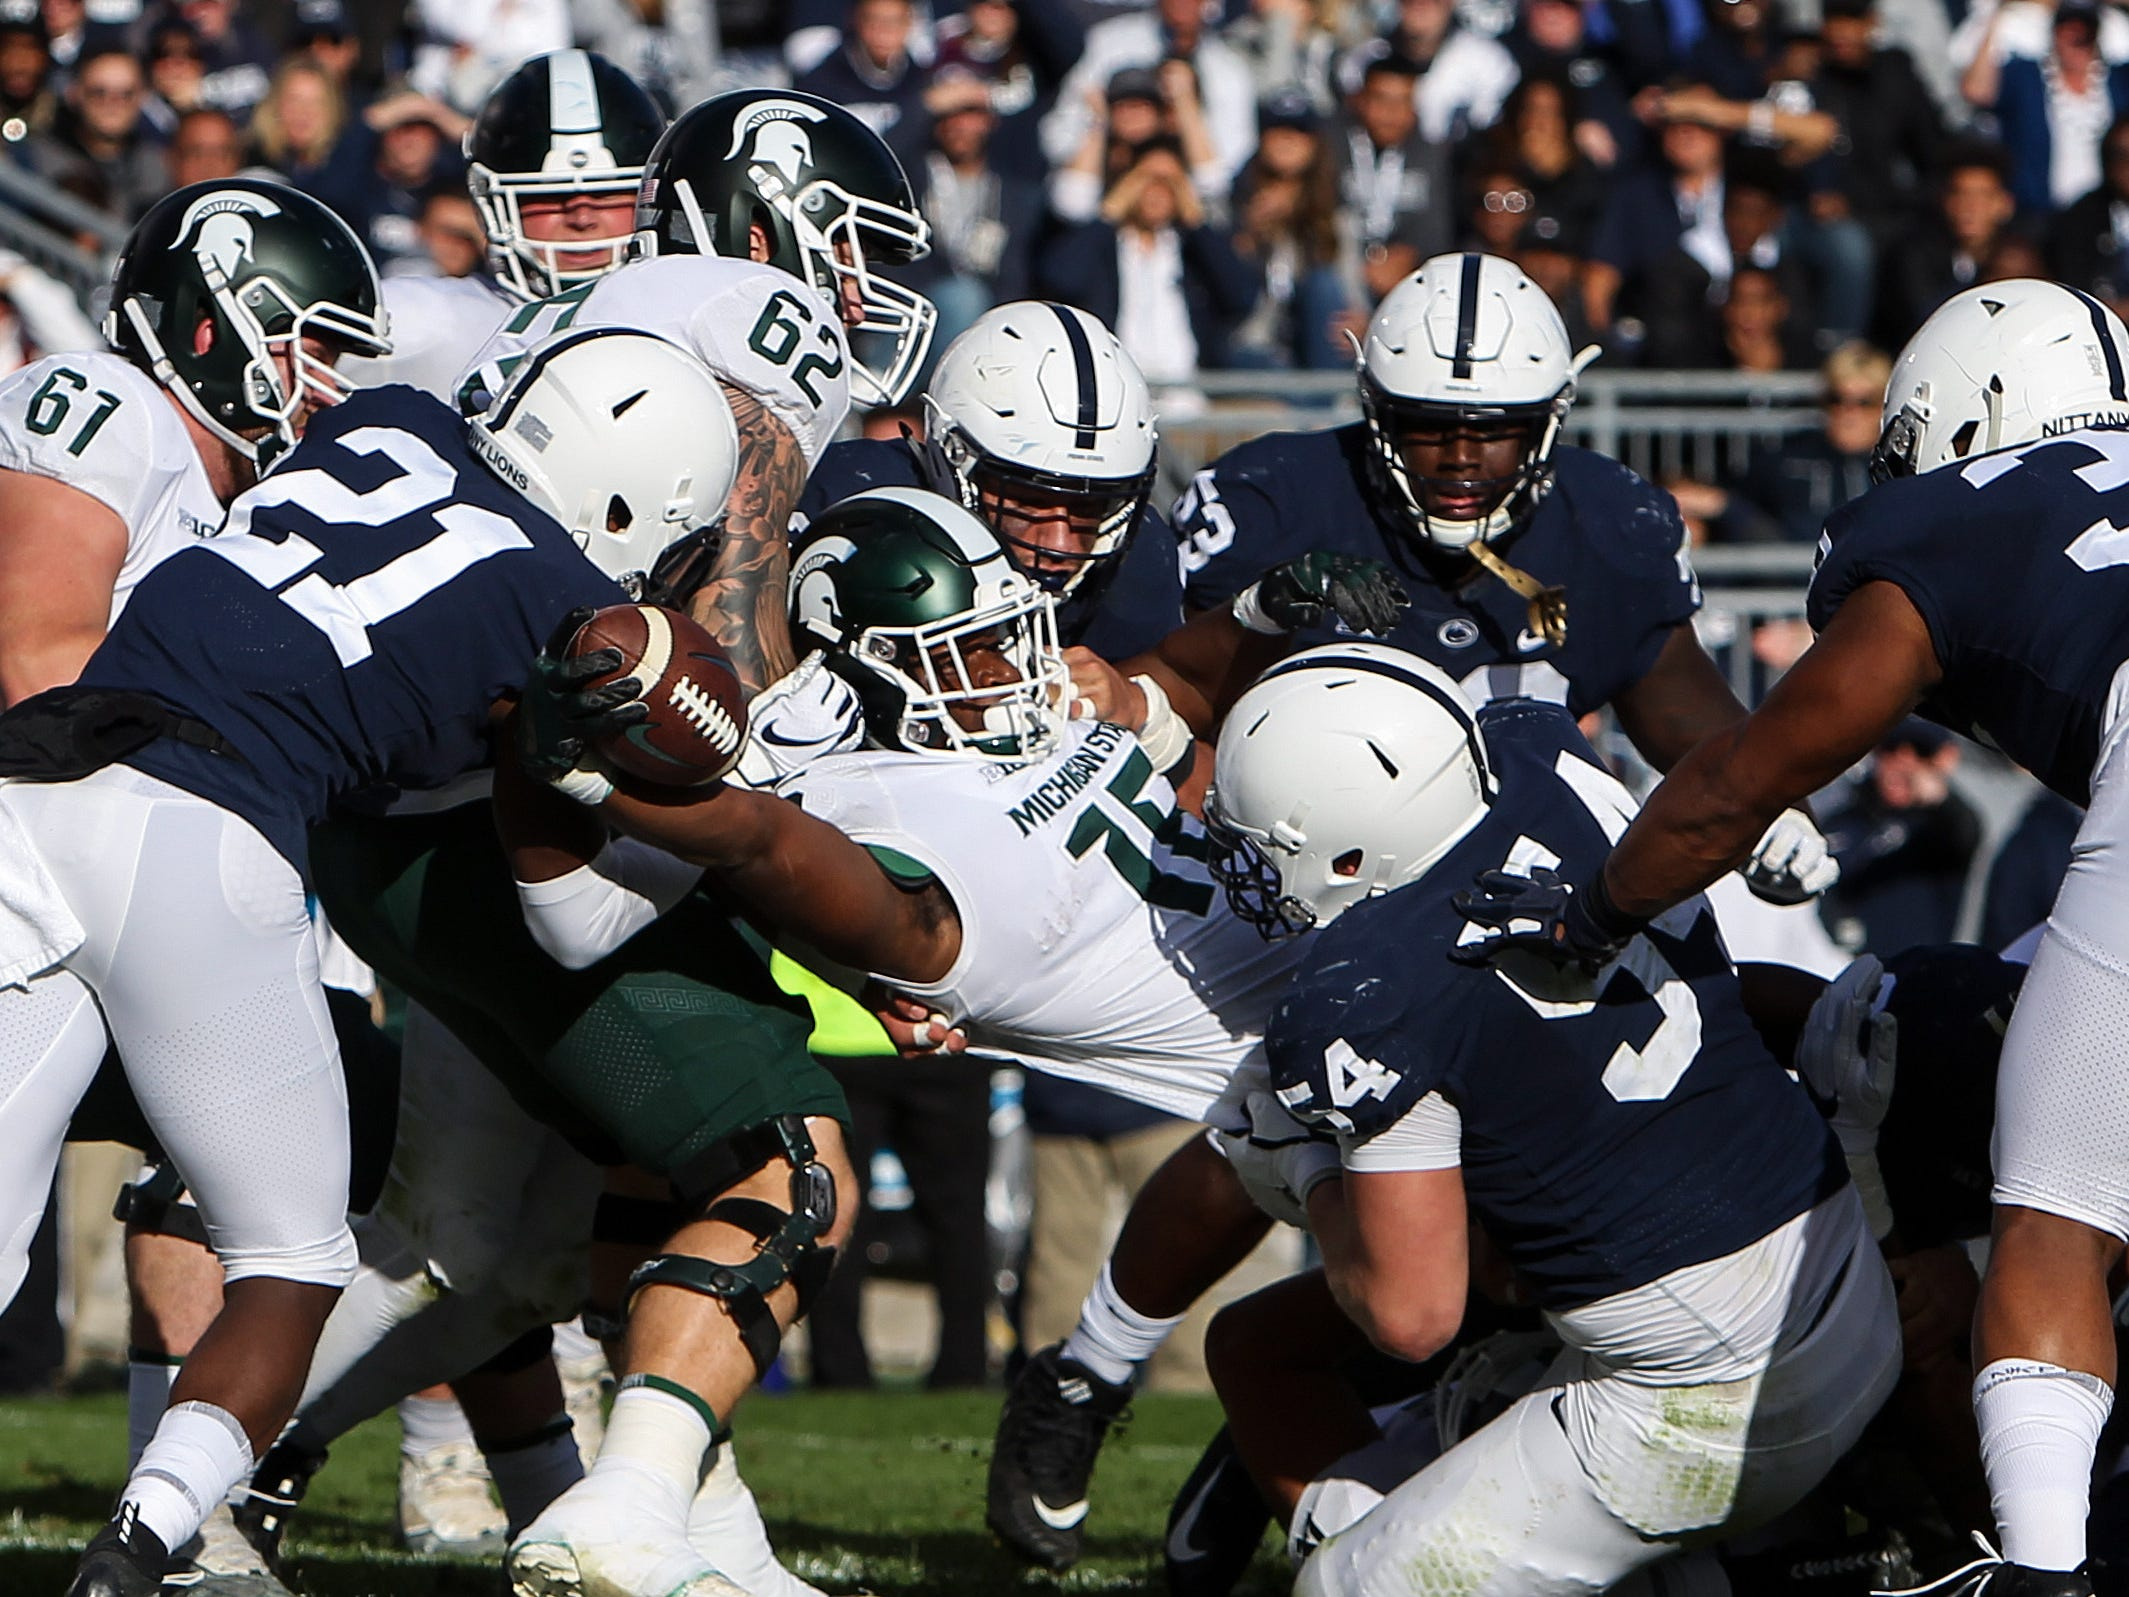 Michigan State Spartans running back La'Darius Jefferson (15) runs the ball into the end zone for a touchdown during the second quarter against the Penn State Nittany Lions at Beaver Stadium.